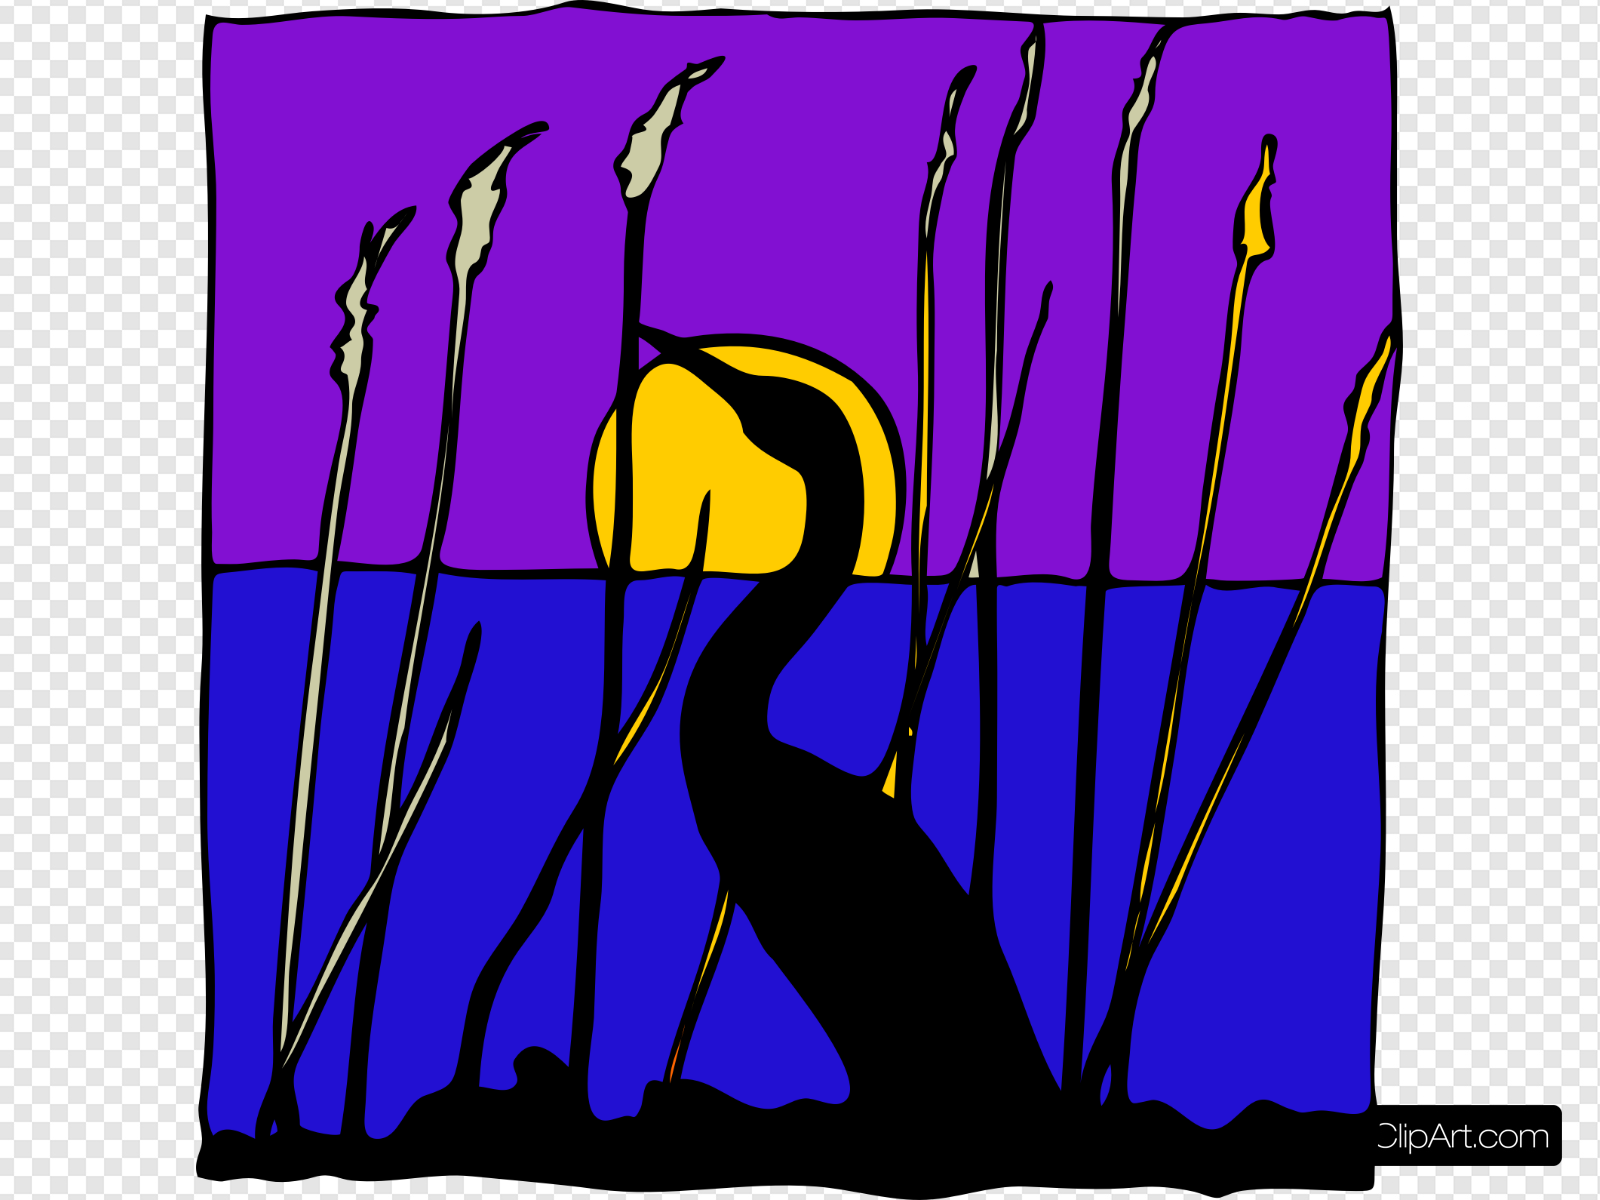 Swan Silhouette In The Moonlight Clip art, Icon and SVG.